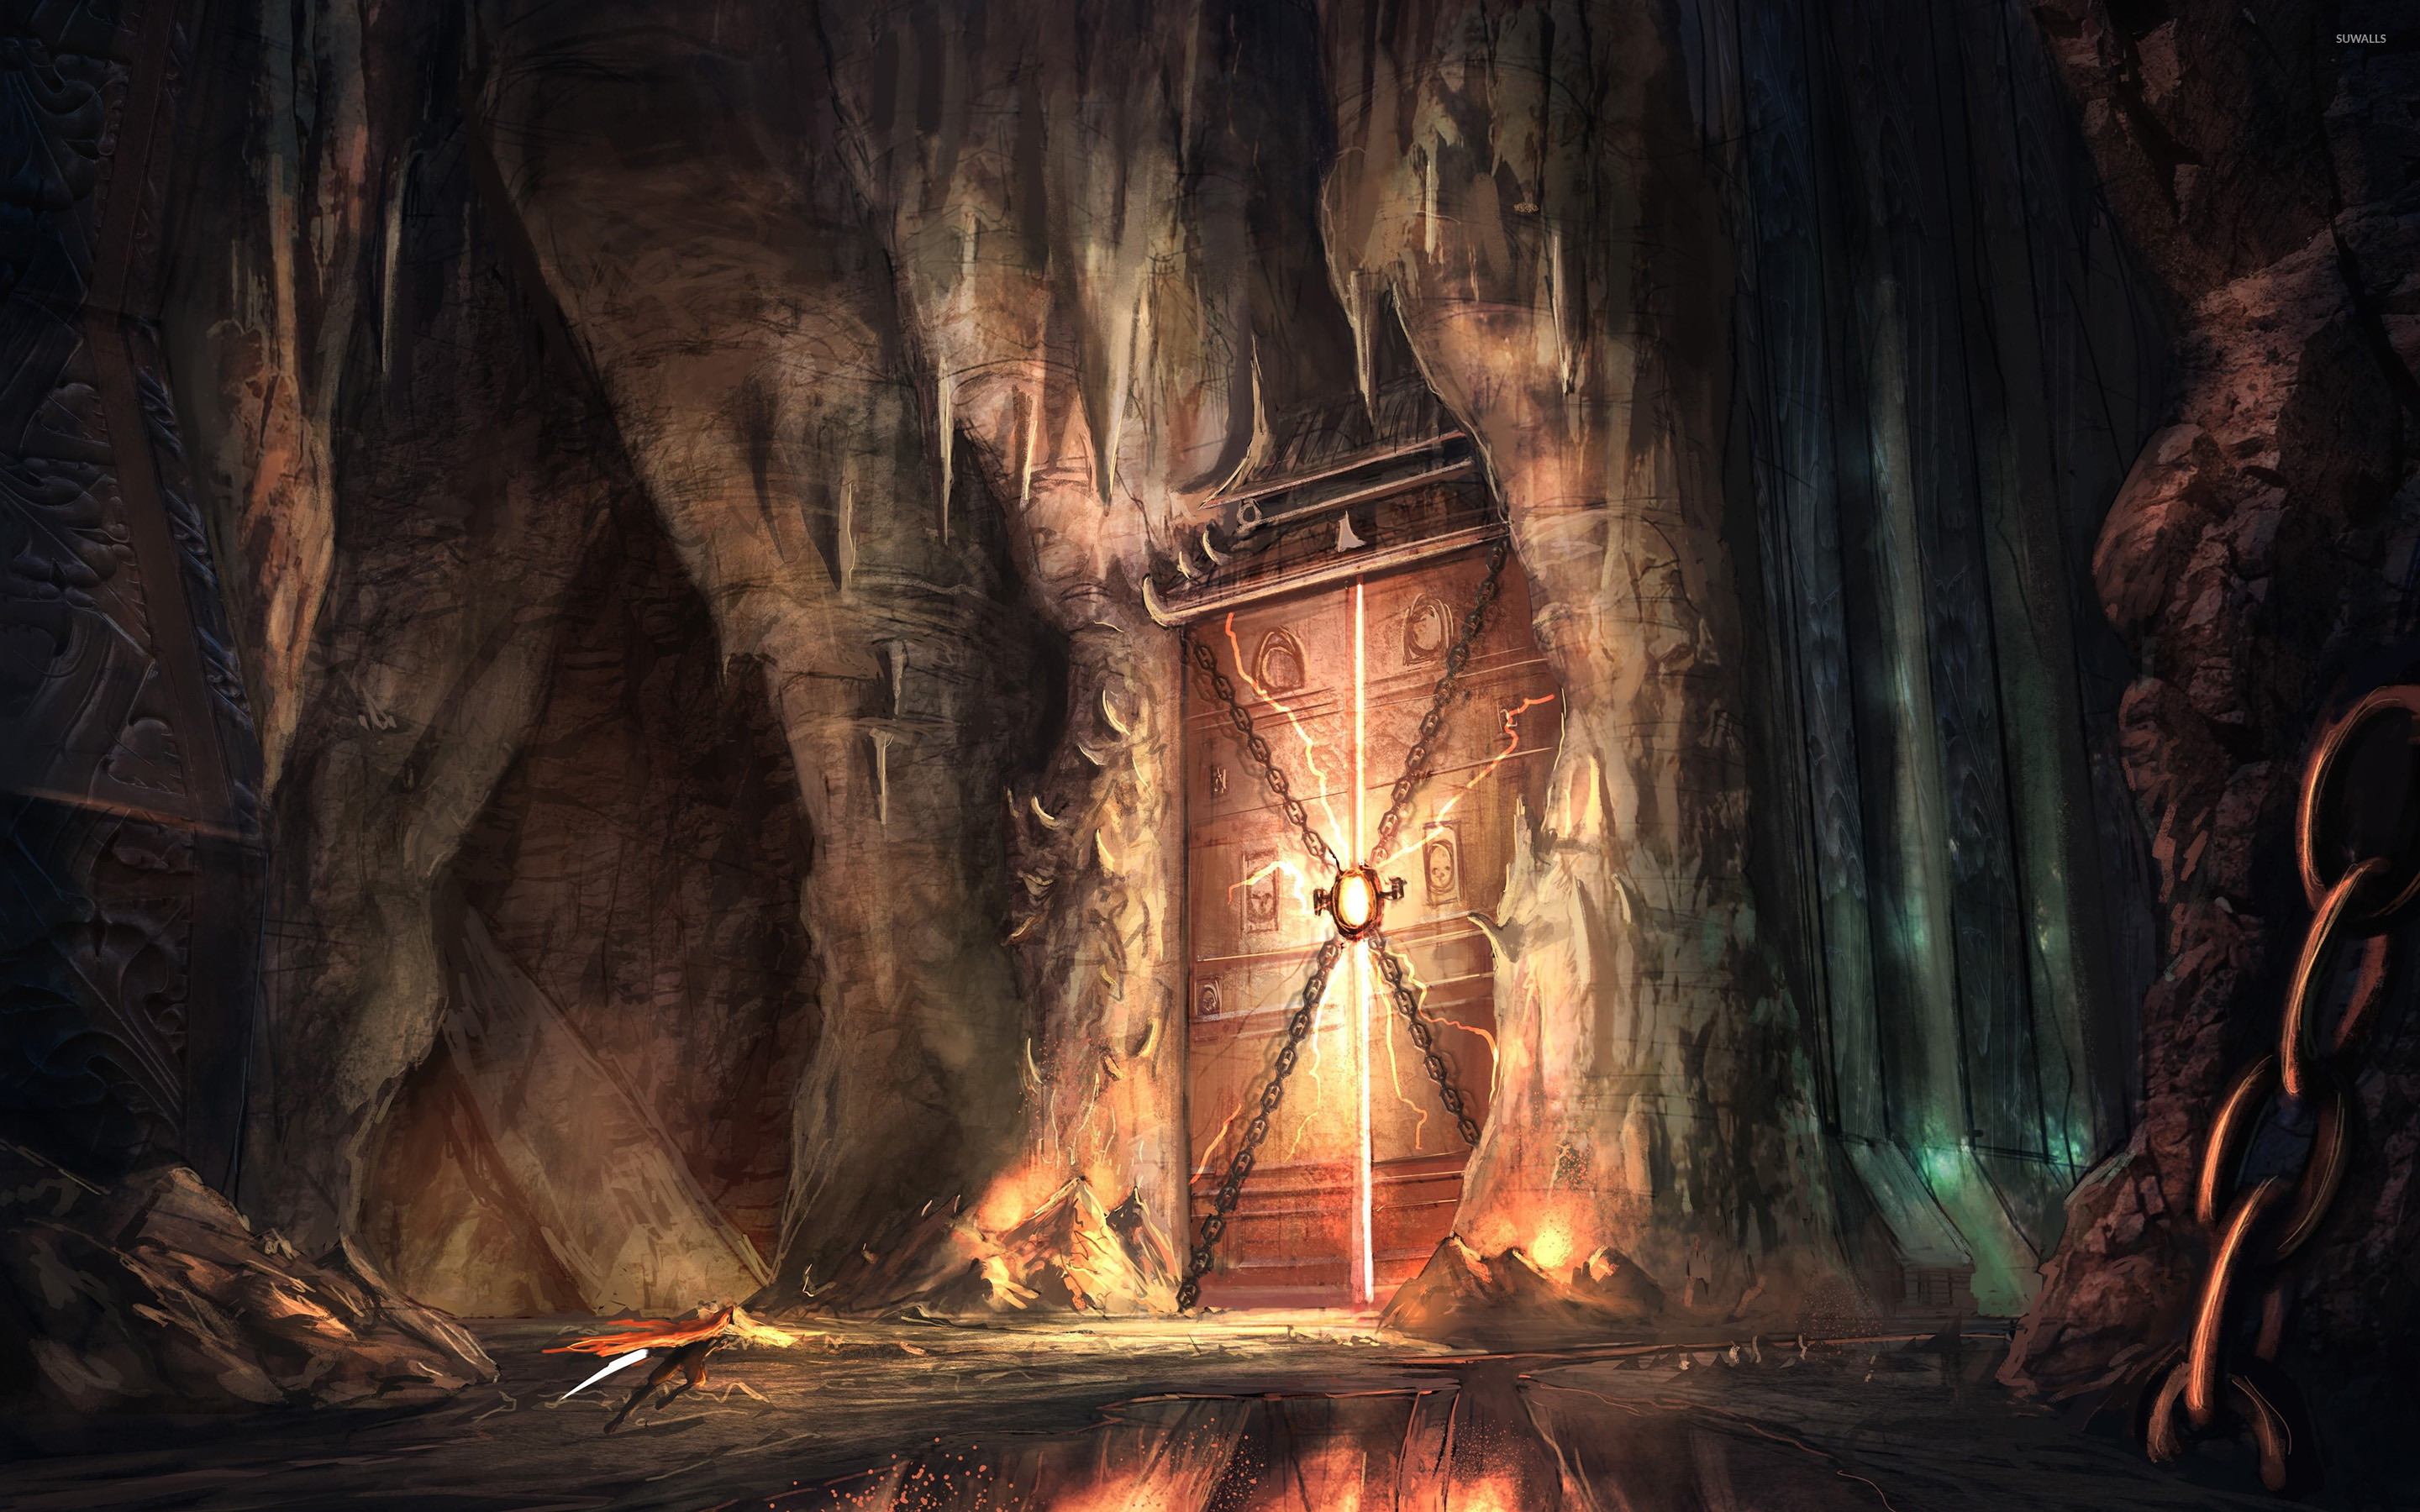 Gates of Hell Wallpaper 75 images 2880x1800